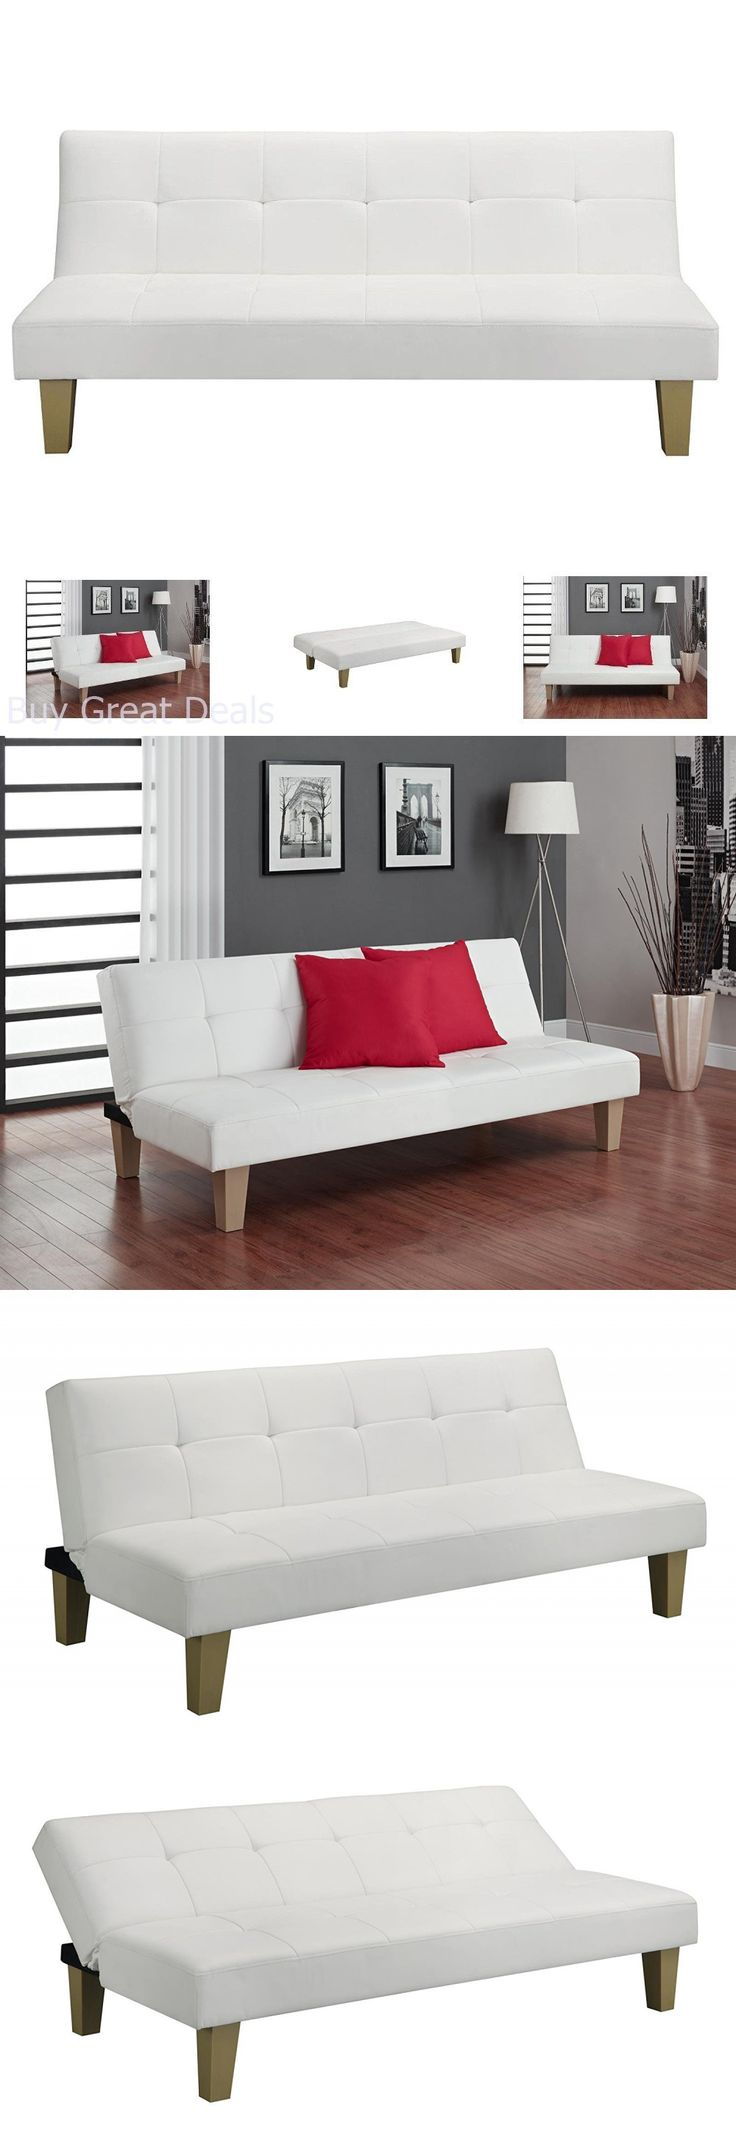 best 20+ modern futon mattresses ideas on pinterest | sofa beds